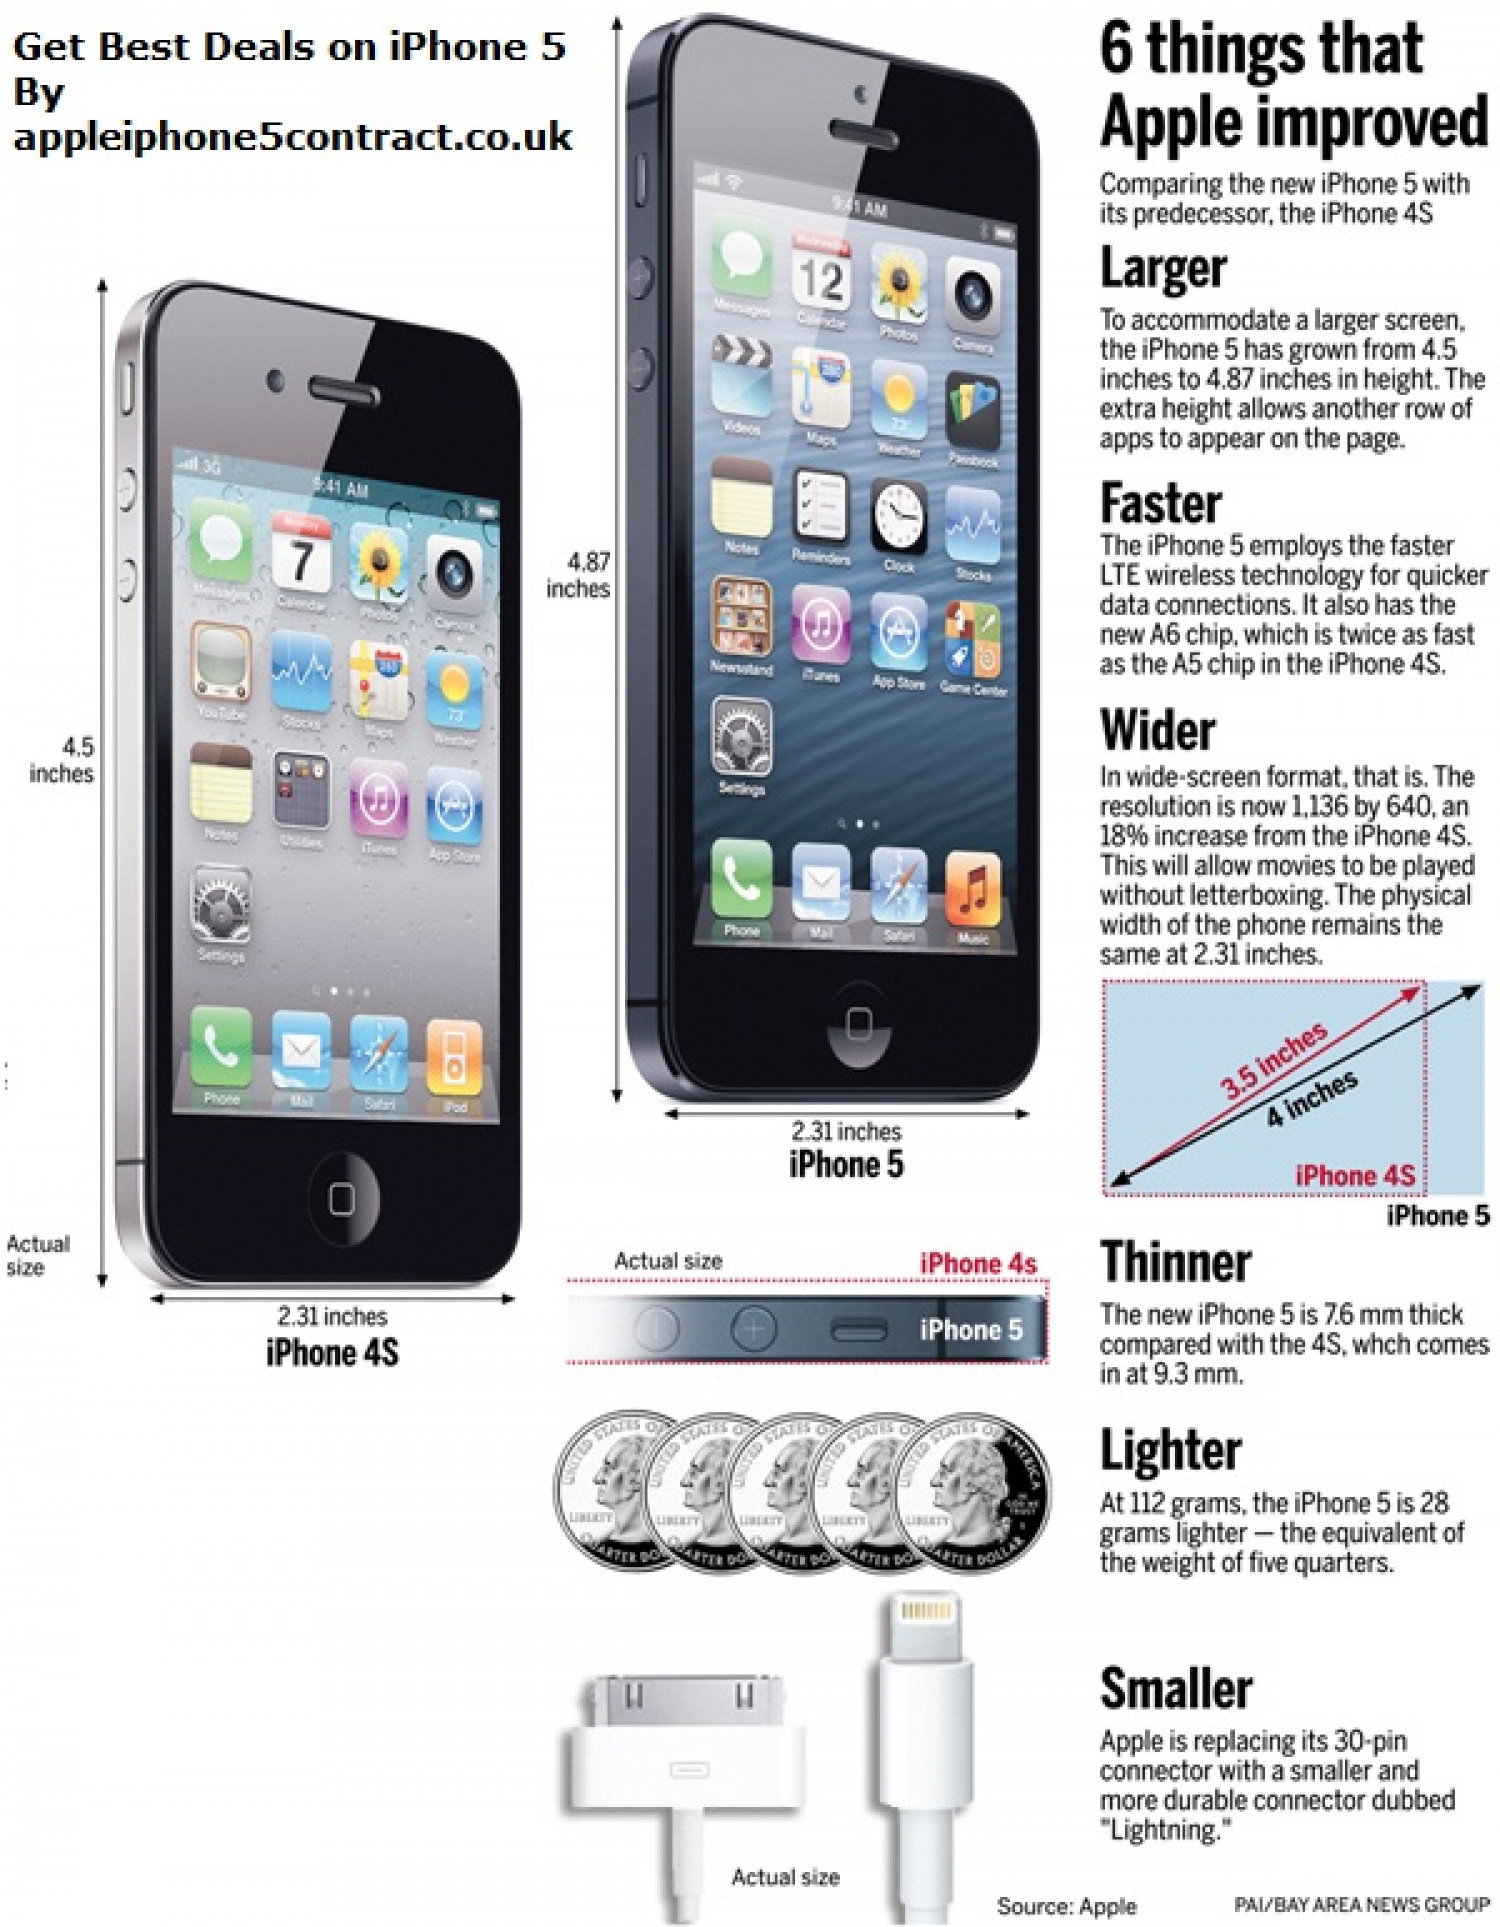 iPhone 5 contract Infographic